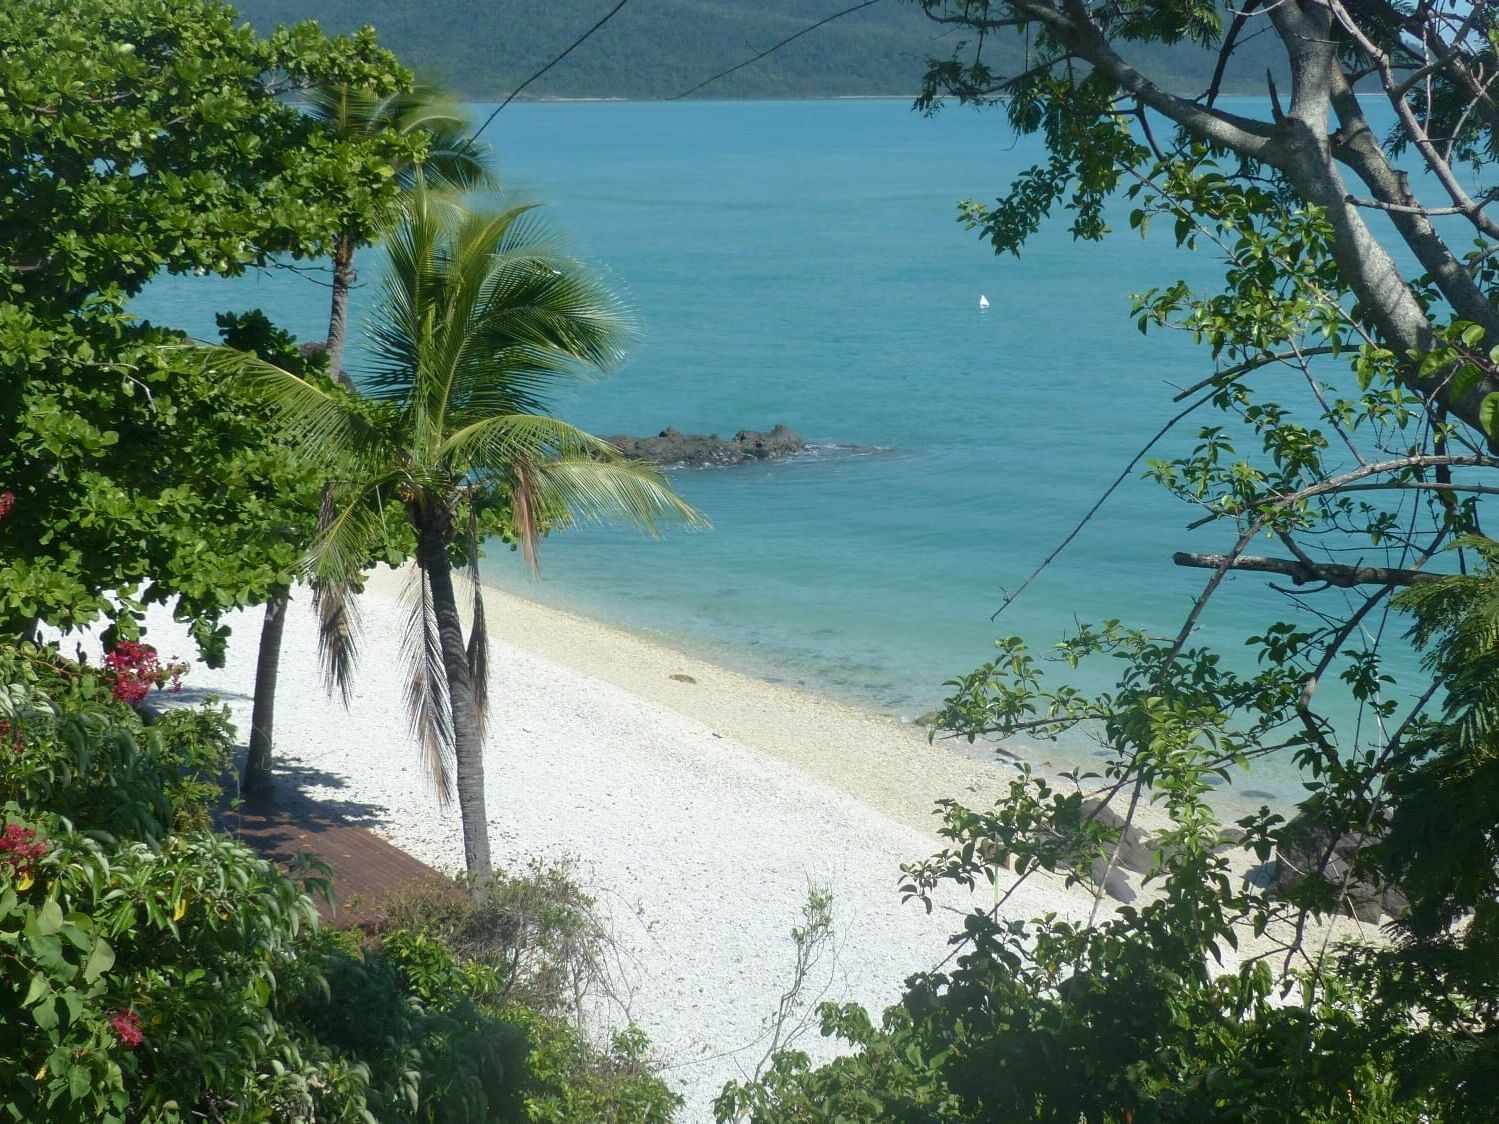 Ocean view from Lovers cove bar at Daydream Island Resort